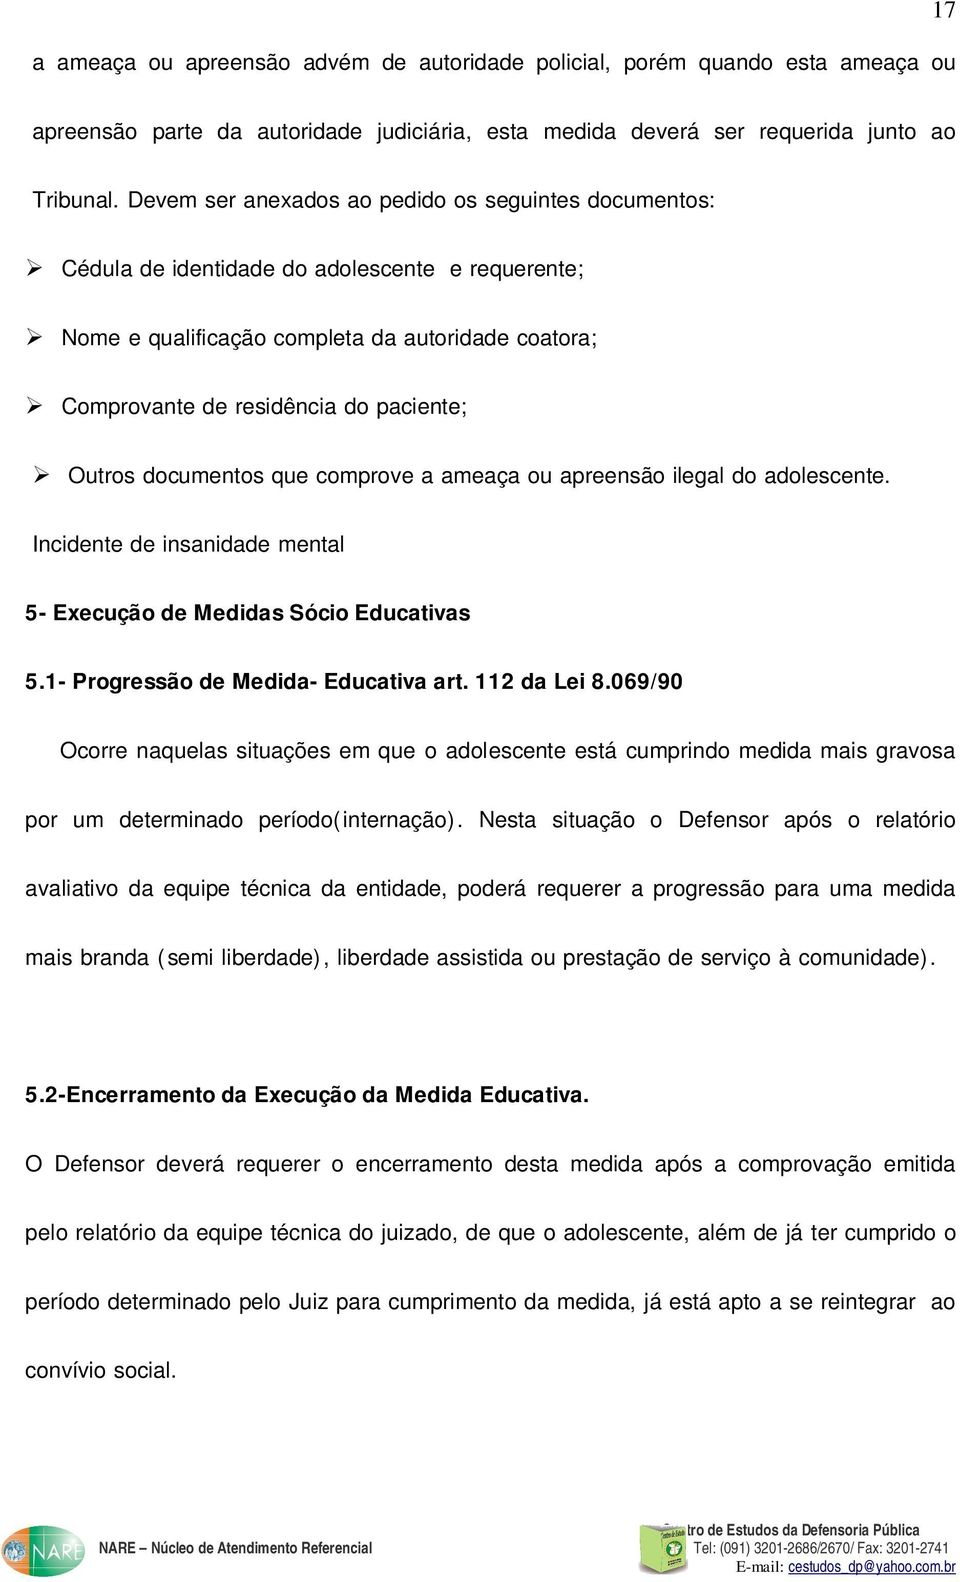 Outros documentos que comprove a ameaça ou apreensão ilegal do adolescente. Incidente de insanidade mental 5- Execução de Medidas Sócio Educativas 5.1- Progressão de Medida- Educativa art.